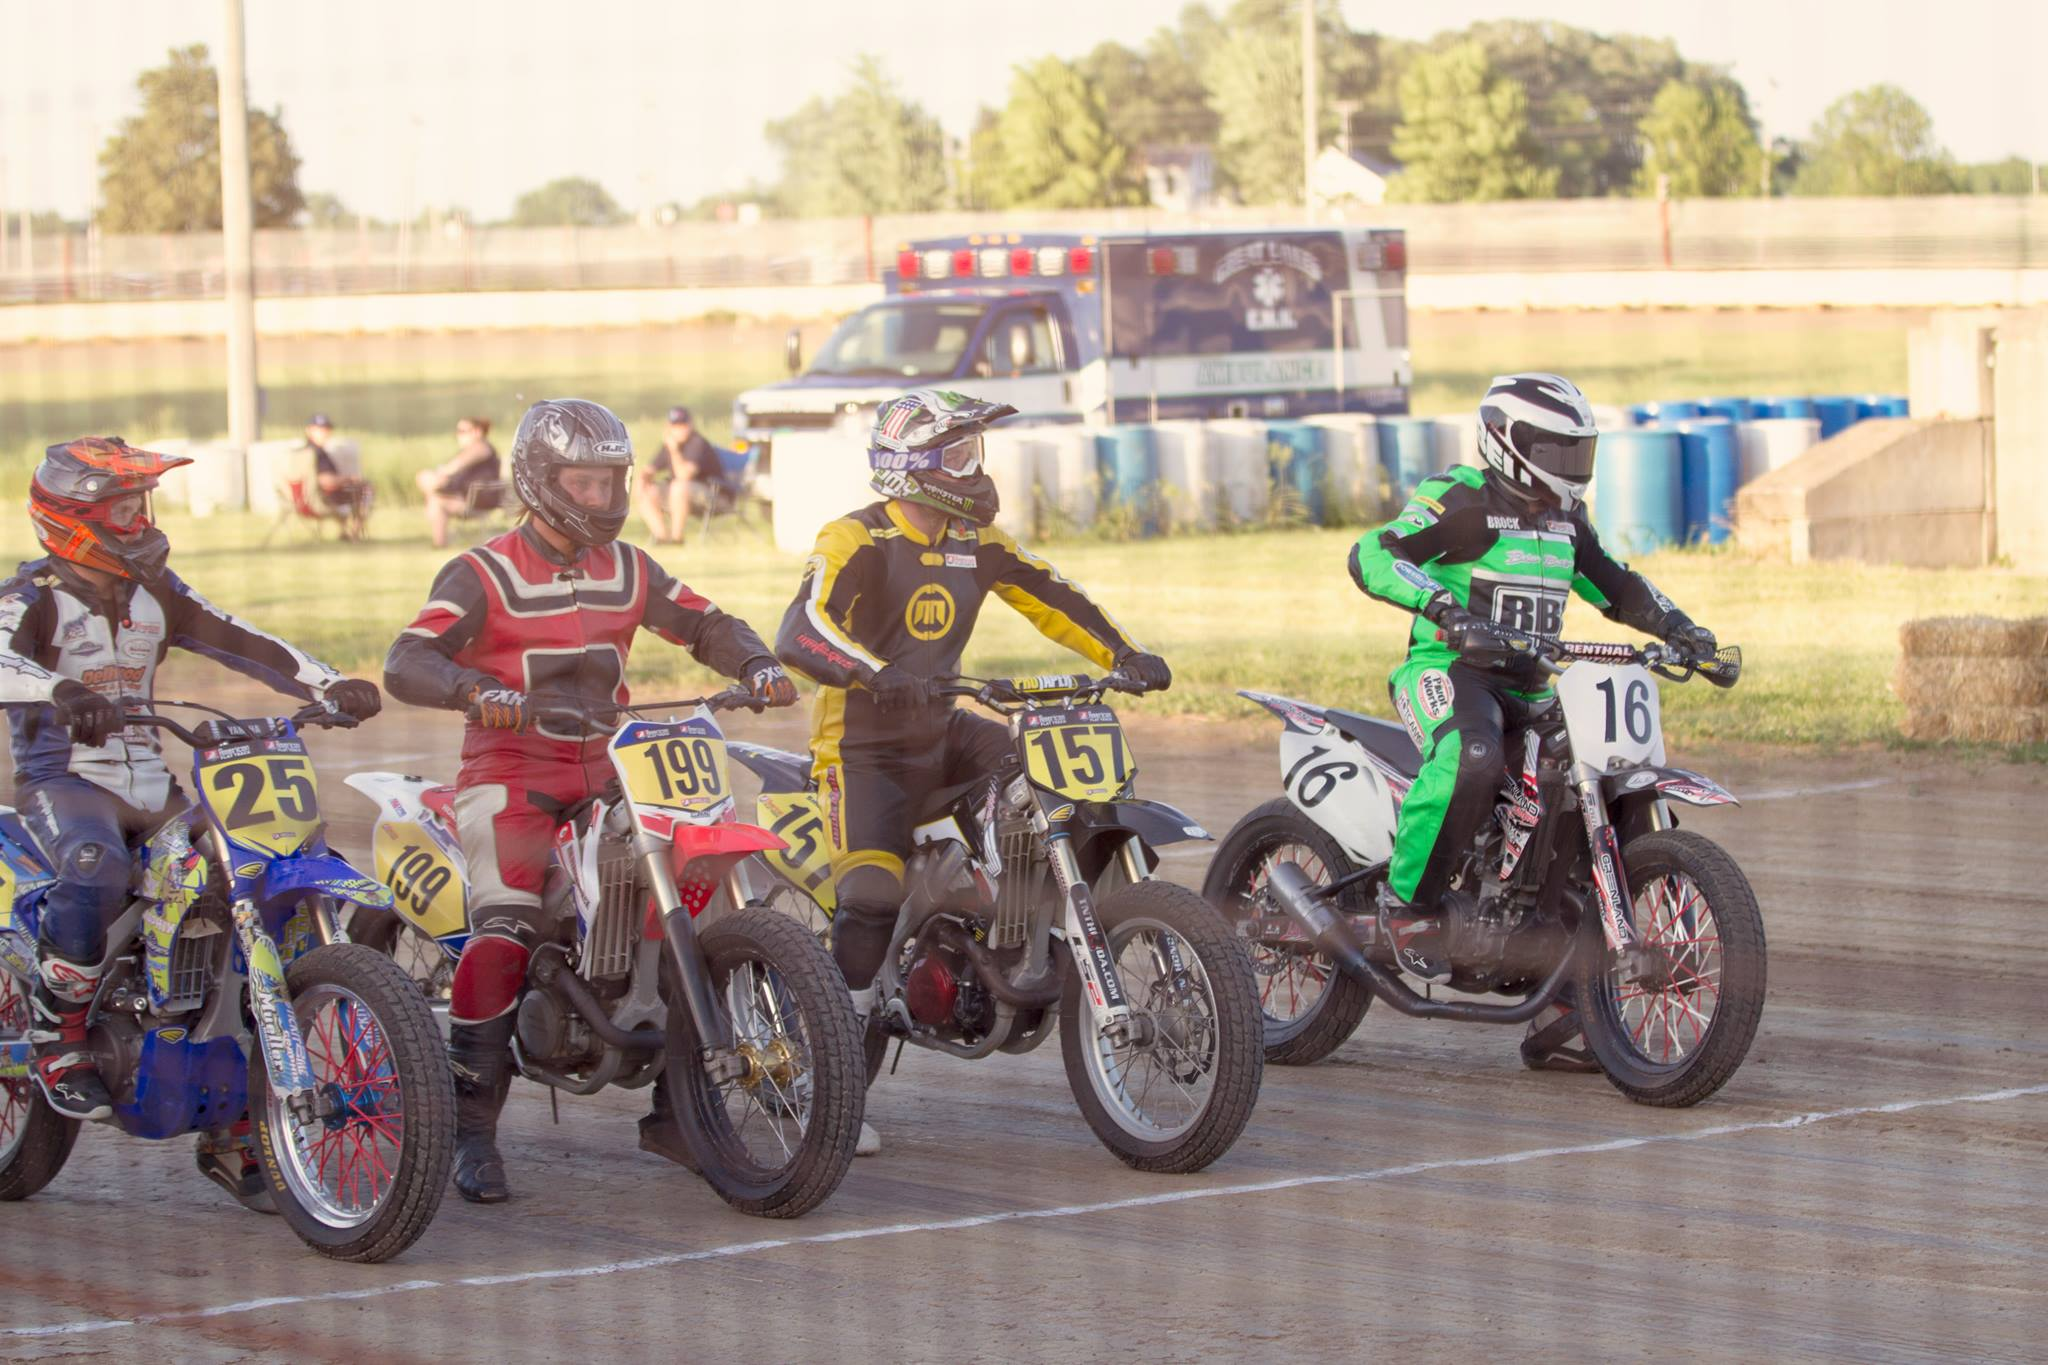 Beaver Cycle Club 2017 AMA Flat Track